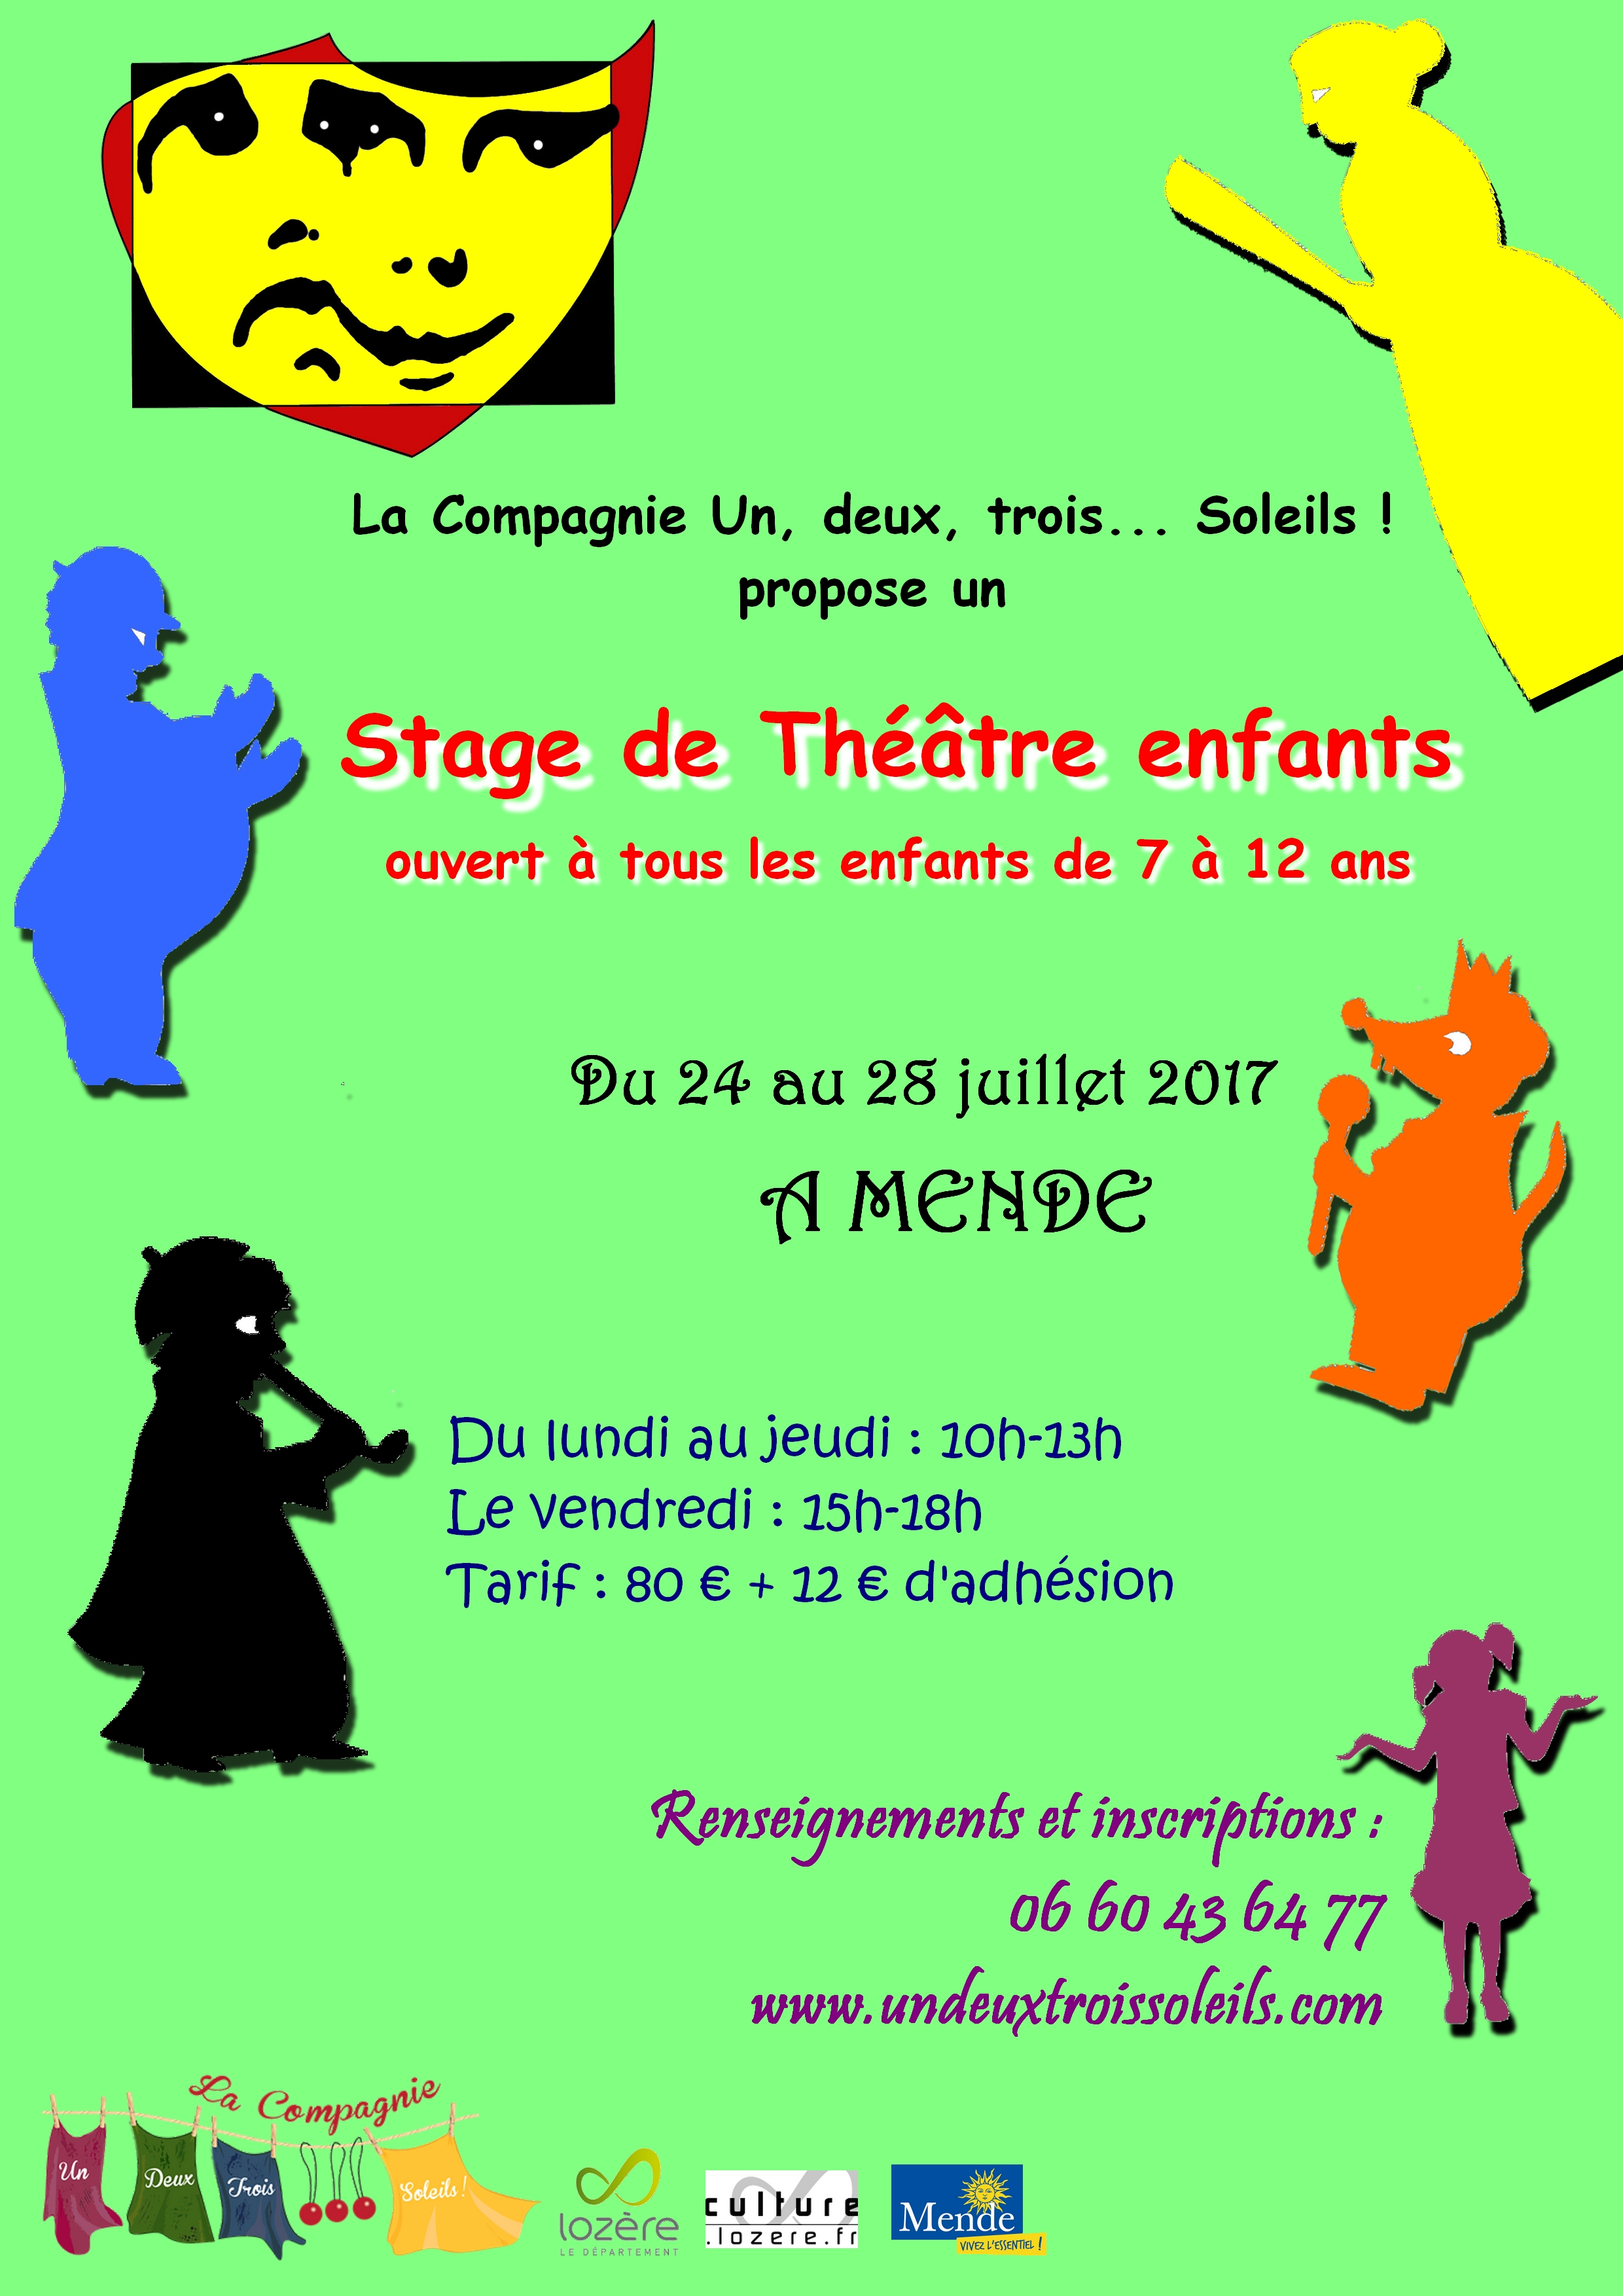 stagethtreenfants07.2017